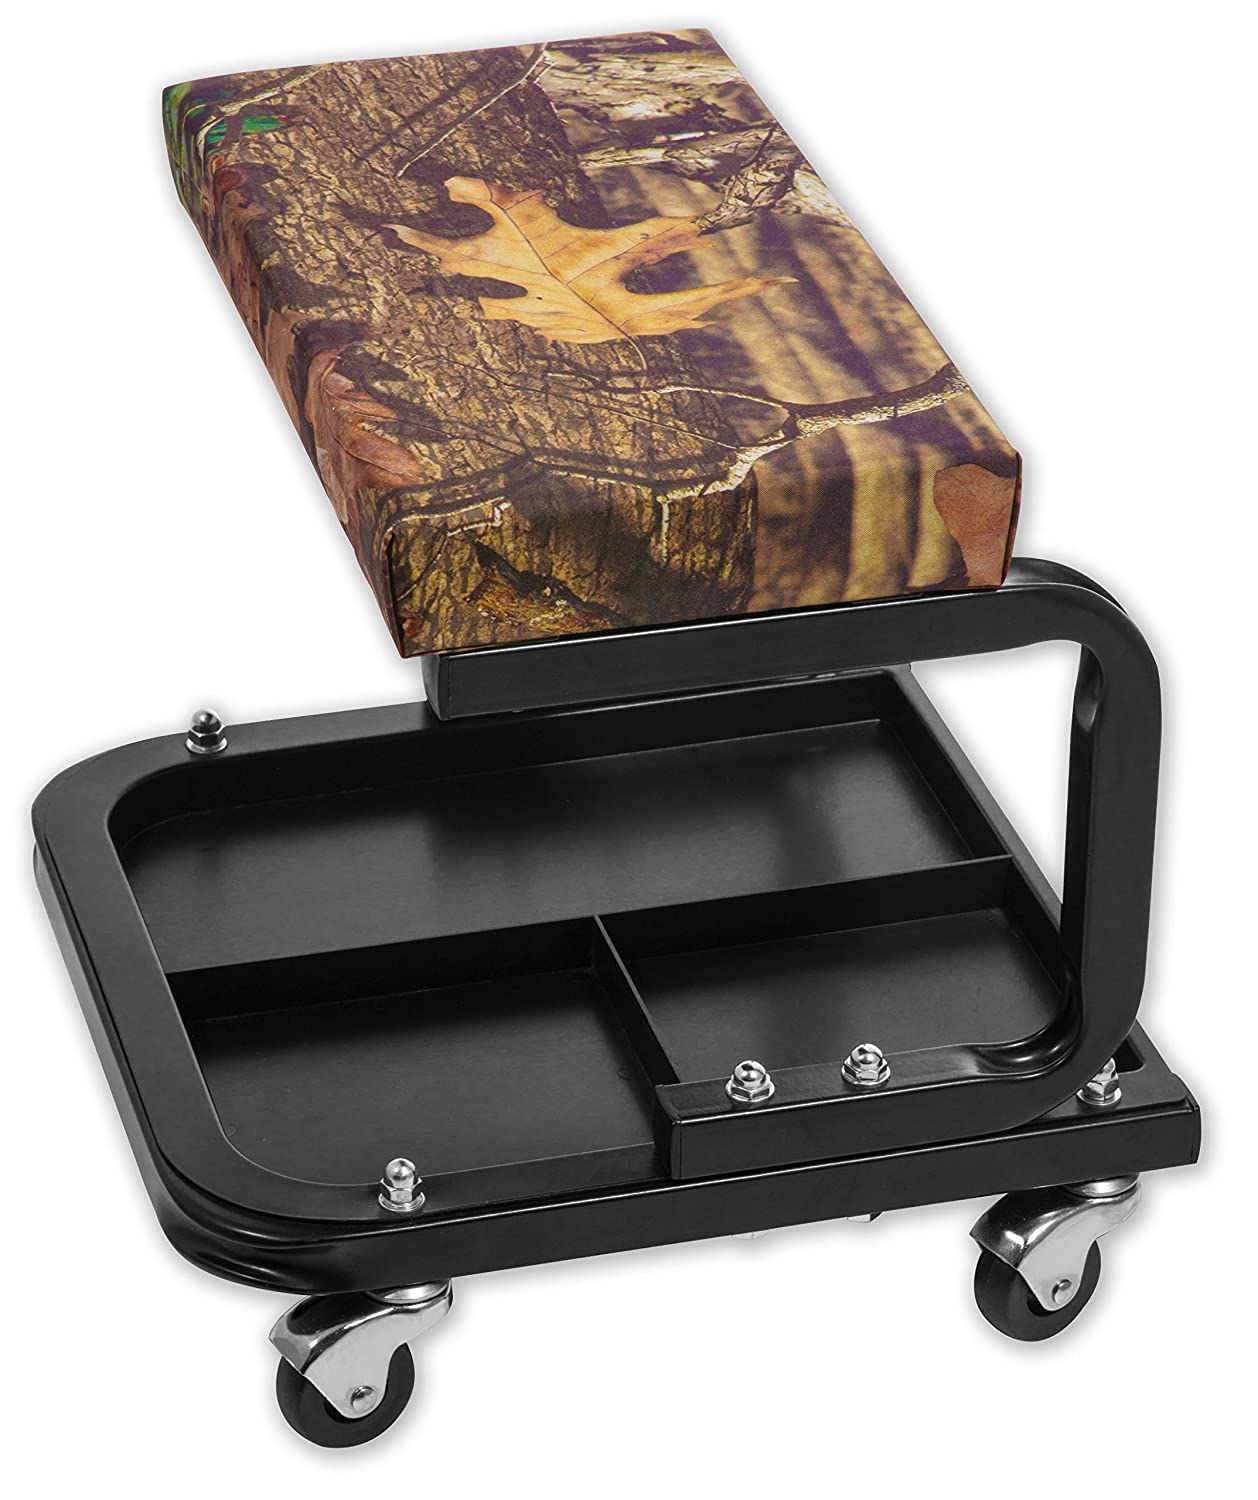 Torin Big Red Rolling Creeper Garage/Shop Seat: Padded Mechanic Stool with Tool Tray, Mossy Oak Camo TR6300MO